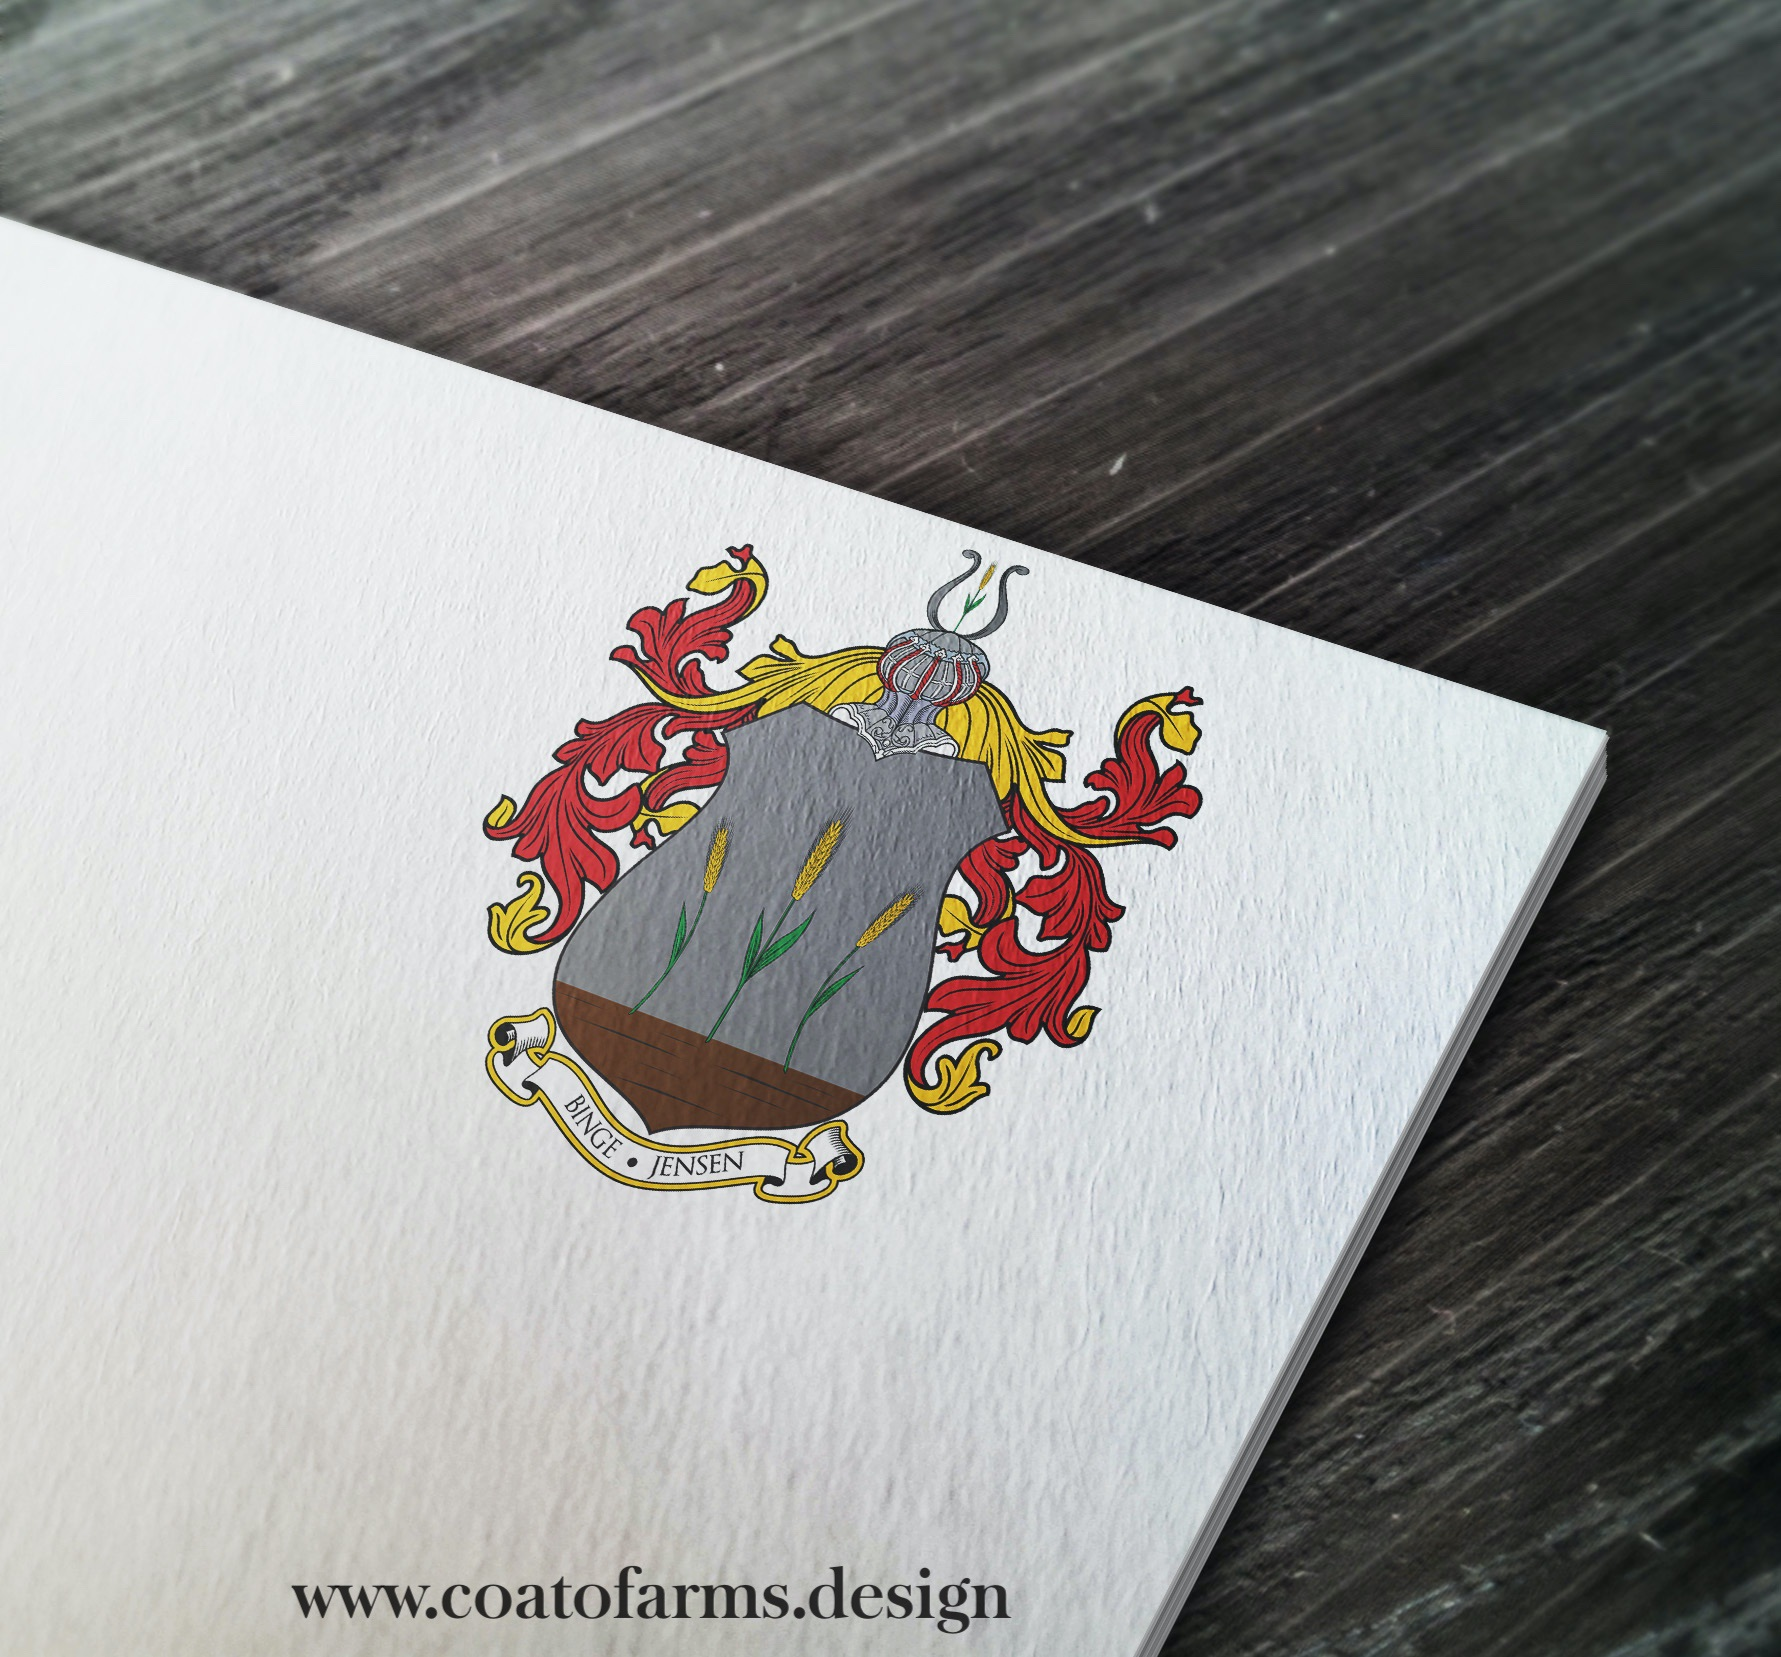 Coat of arms I designed for a client from Germany, based on his signet 1